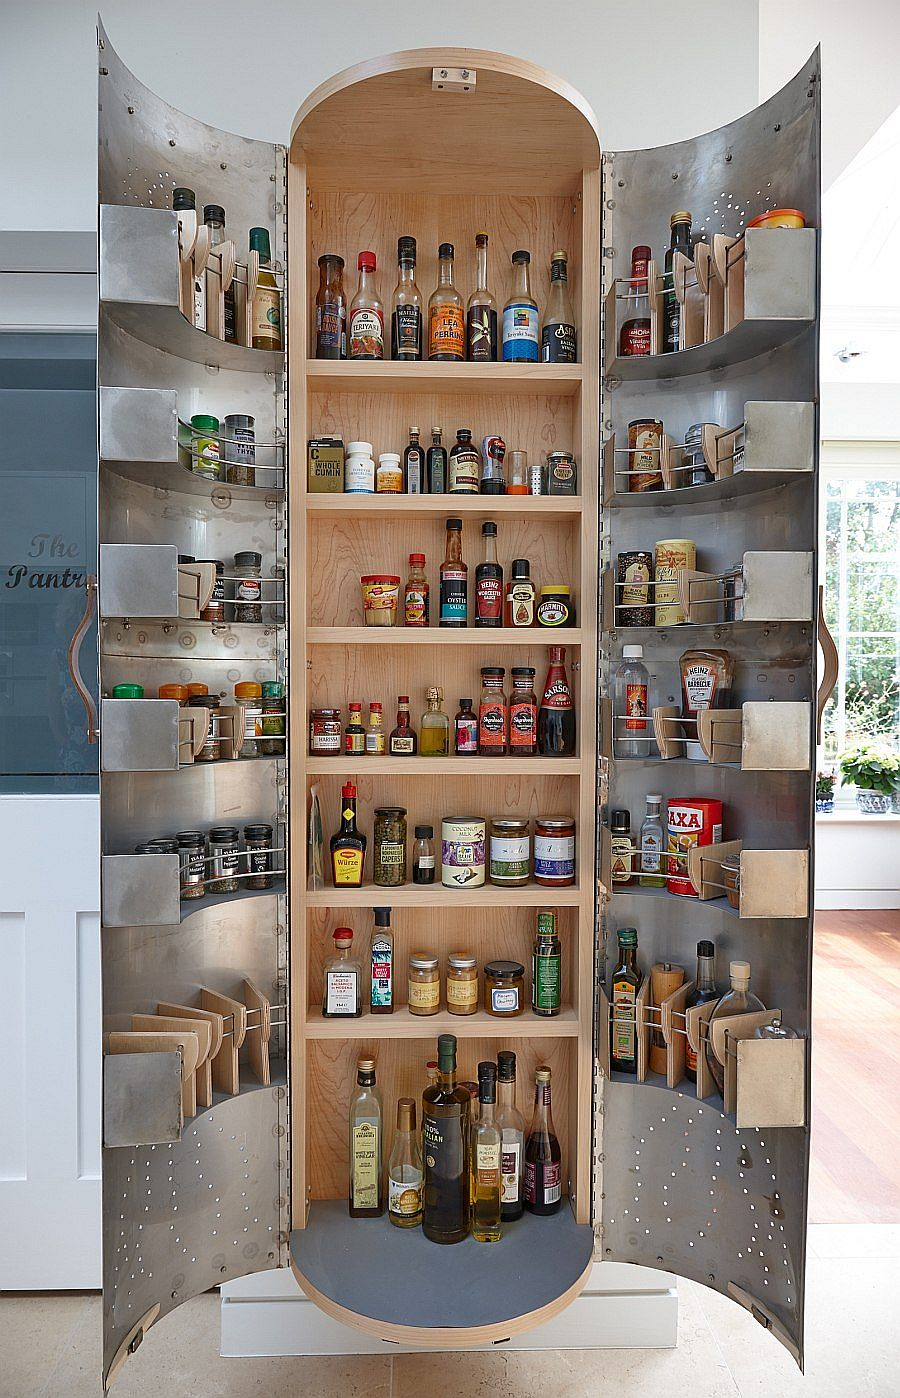 Stock Room Design: 10 Small Pantry Ideas For An Organized, Space-Savvy Kitchen